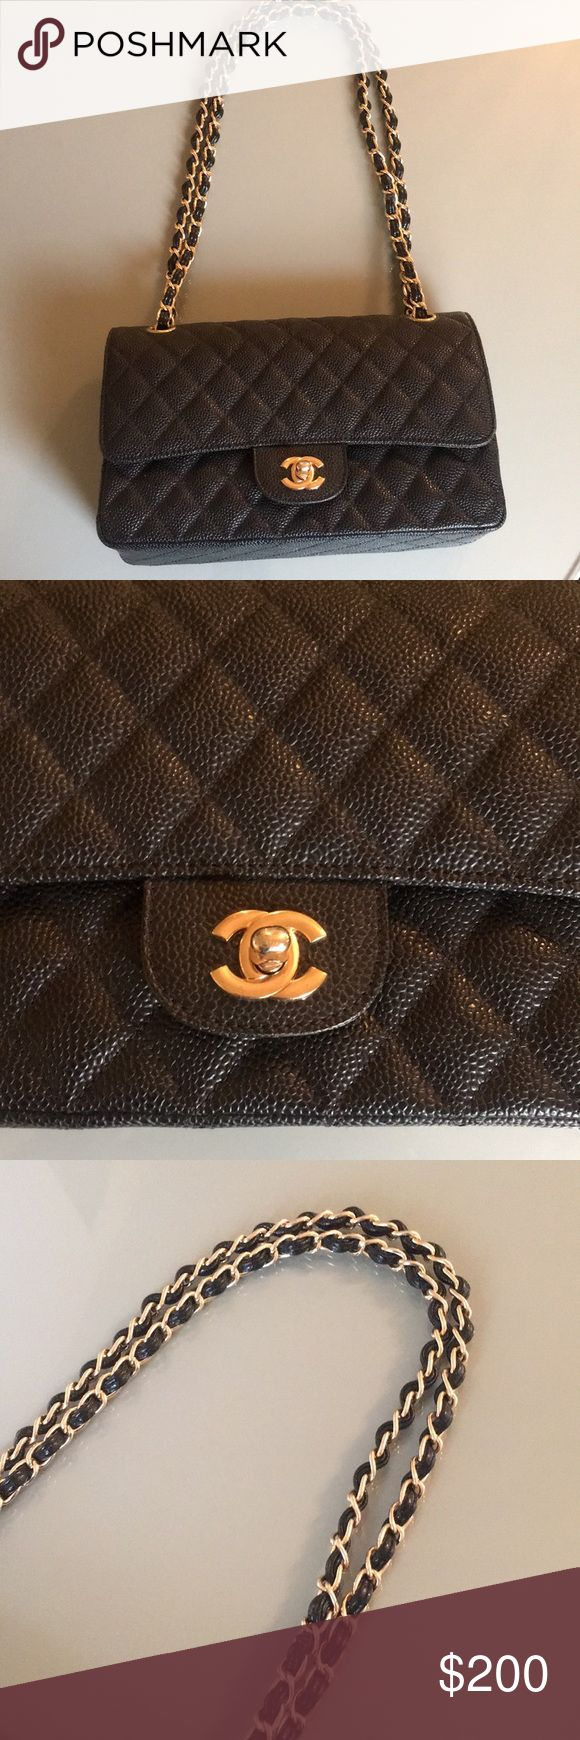 Chanel flap bag caviar leather Inspired!! real calfskin leather Small size CHANEL Bags